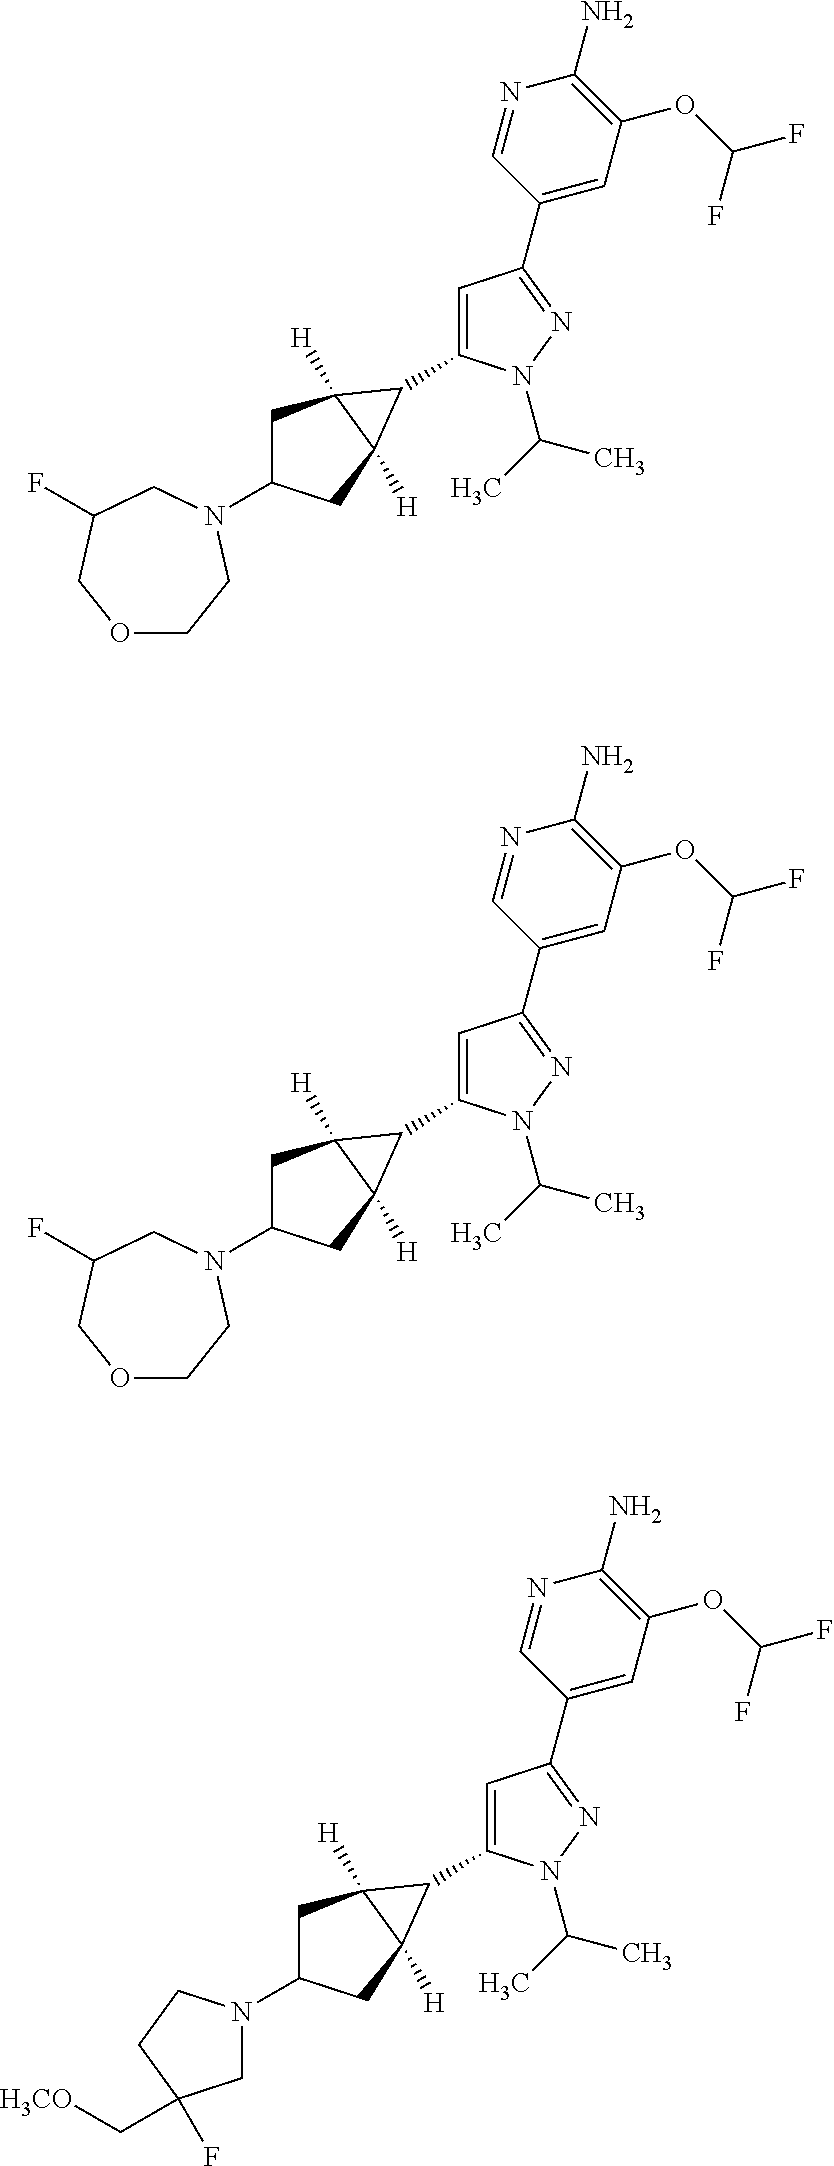 us9365583b2 substituted pyrazoles and uses thereof patents McDonnell Douglas F -15 Eagle figure us09365583 20160614 c00076